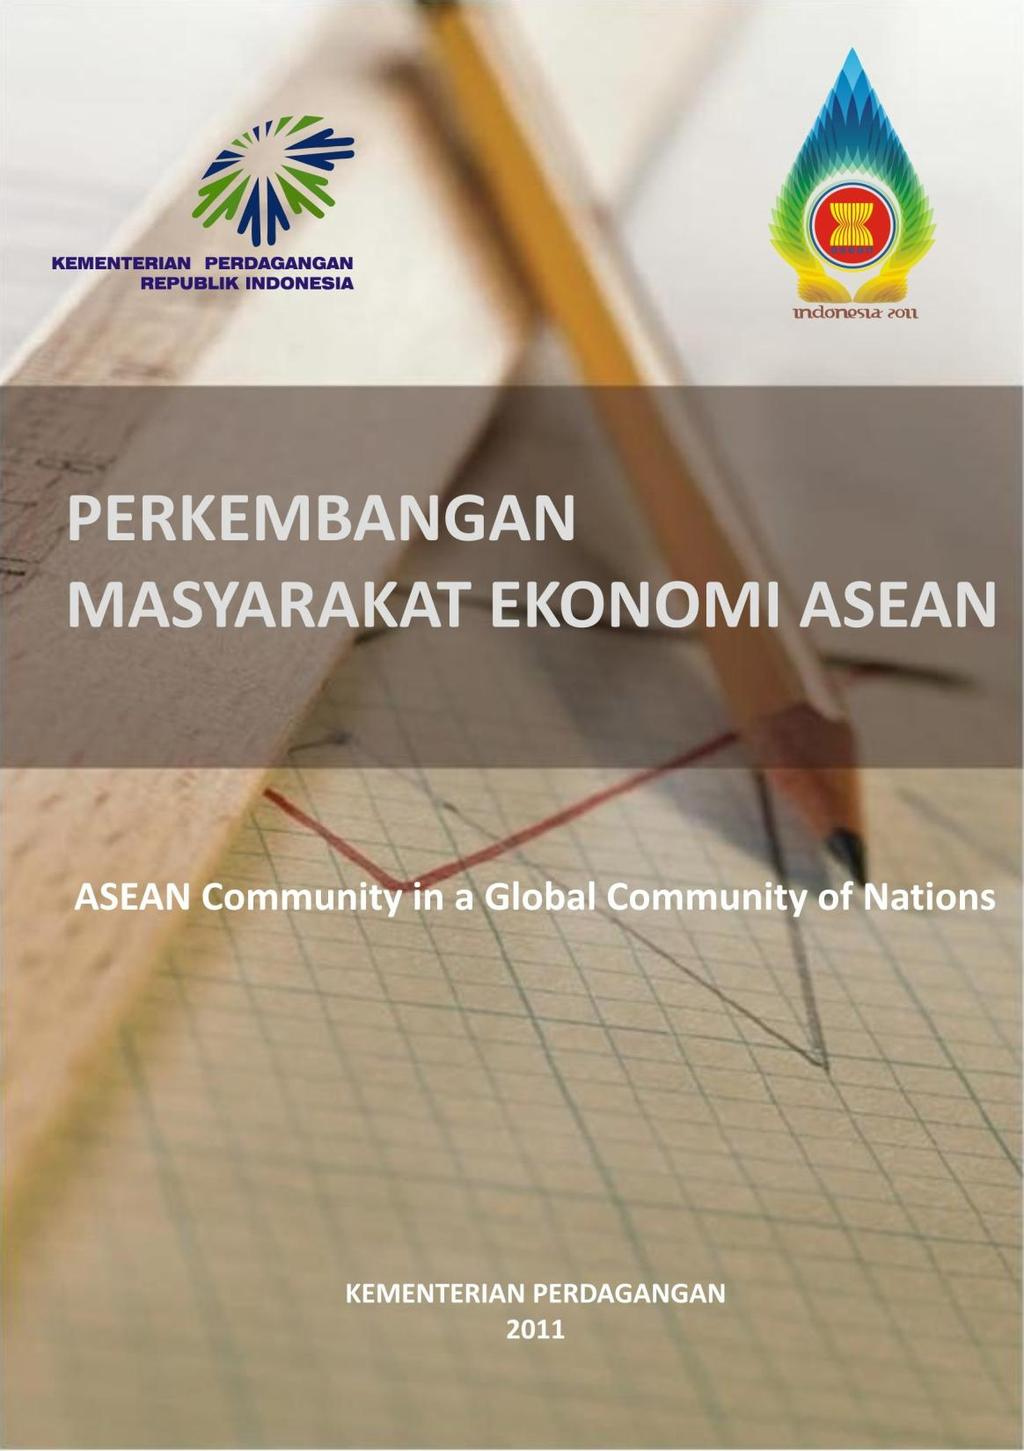 ASEAN Community in a Global Community of Nations ASEAN